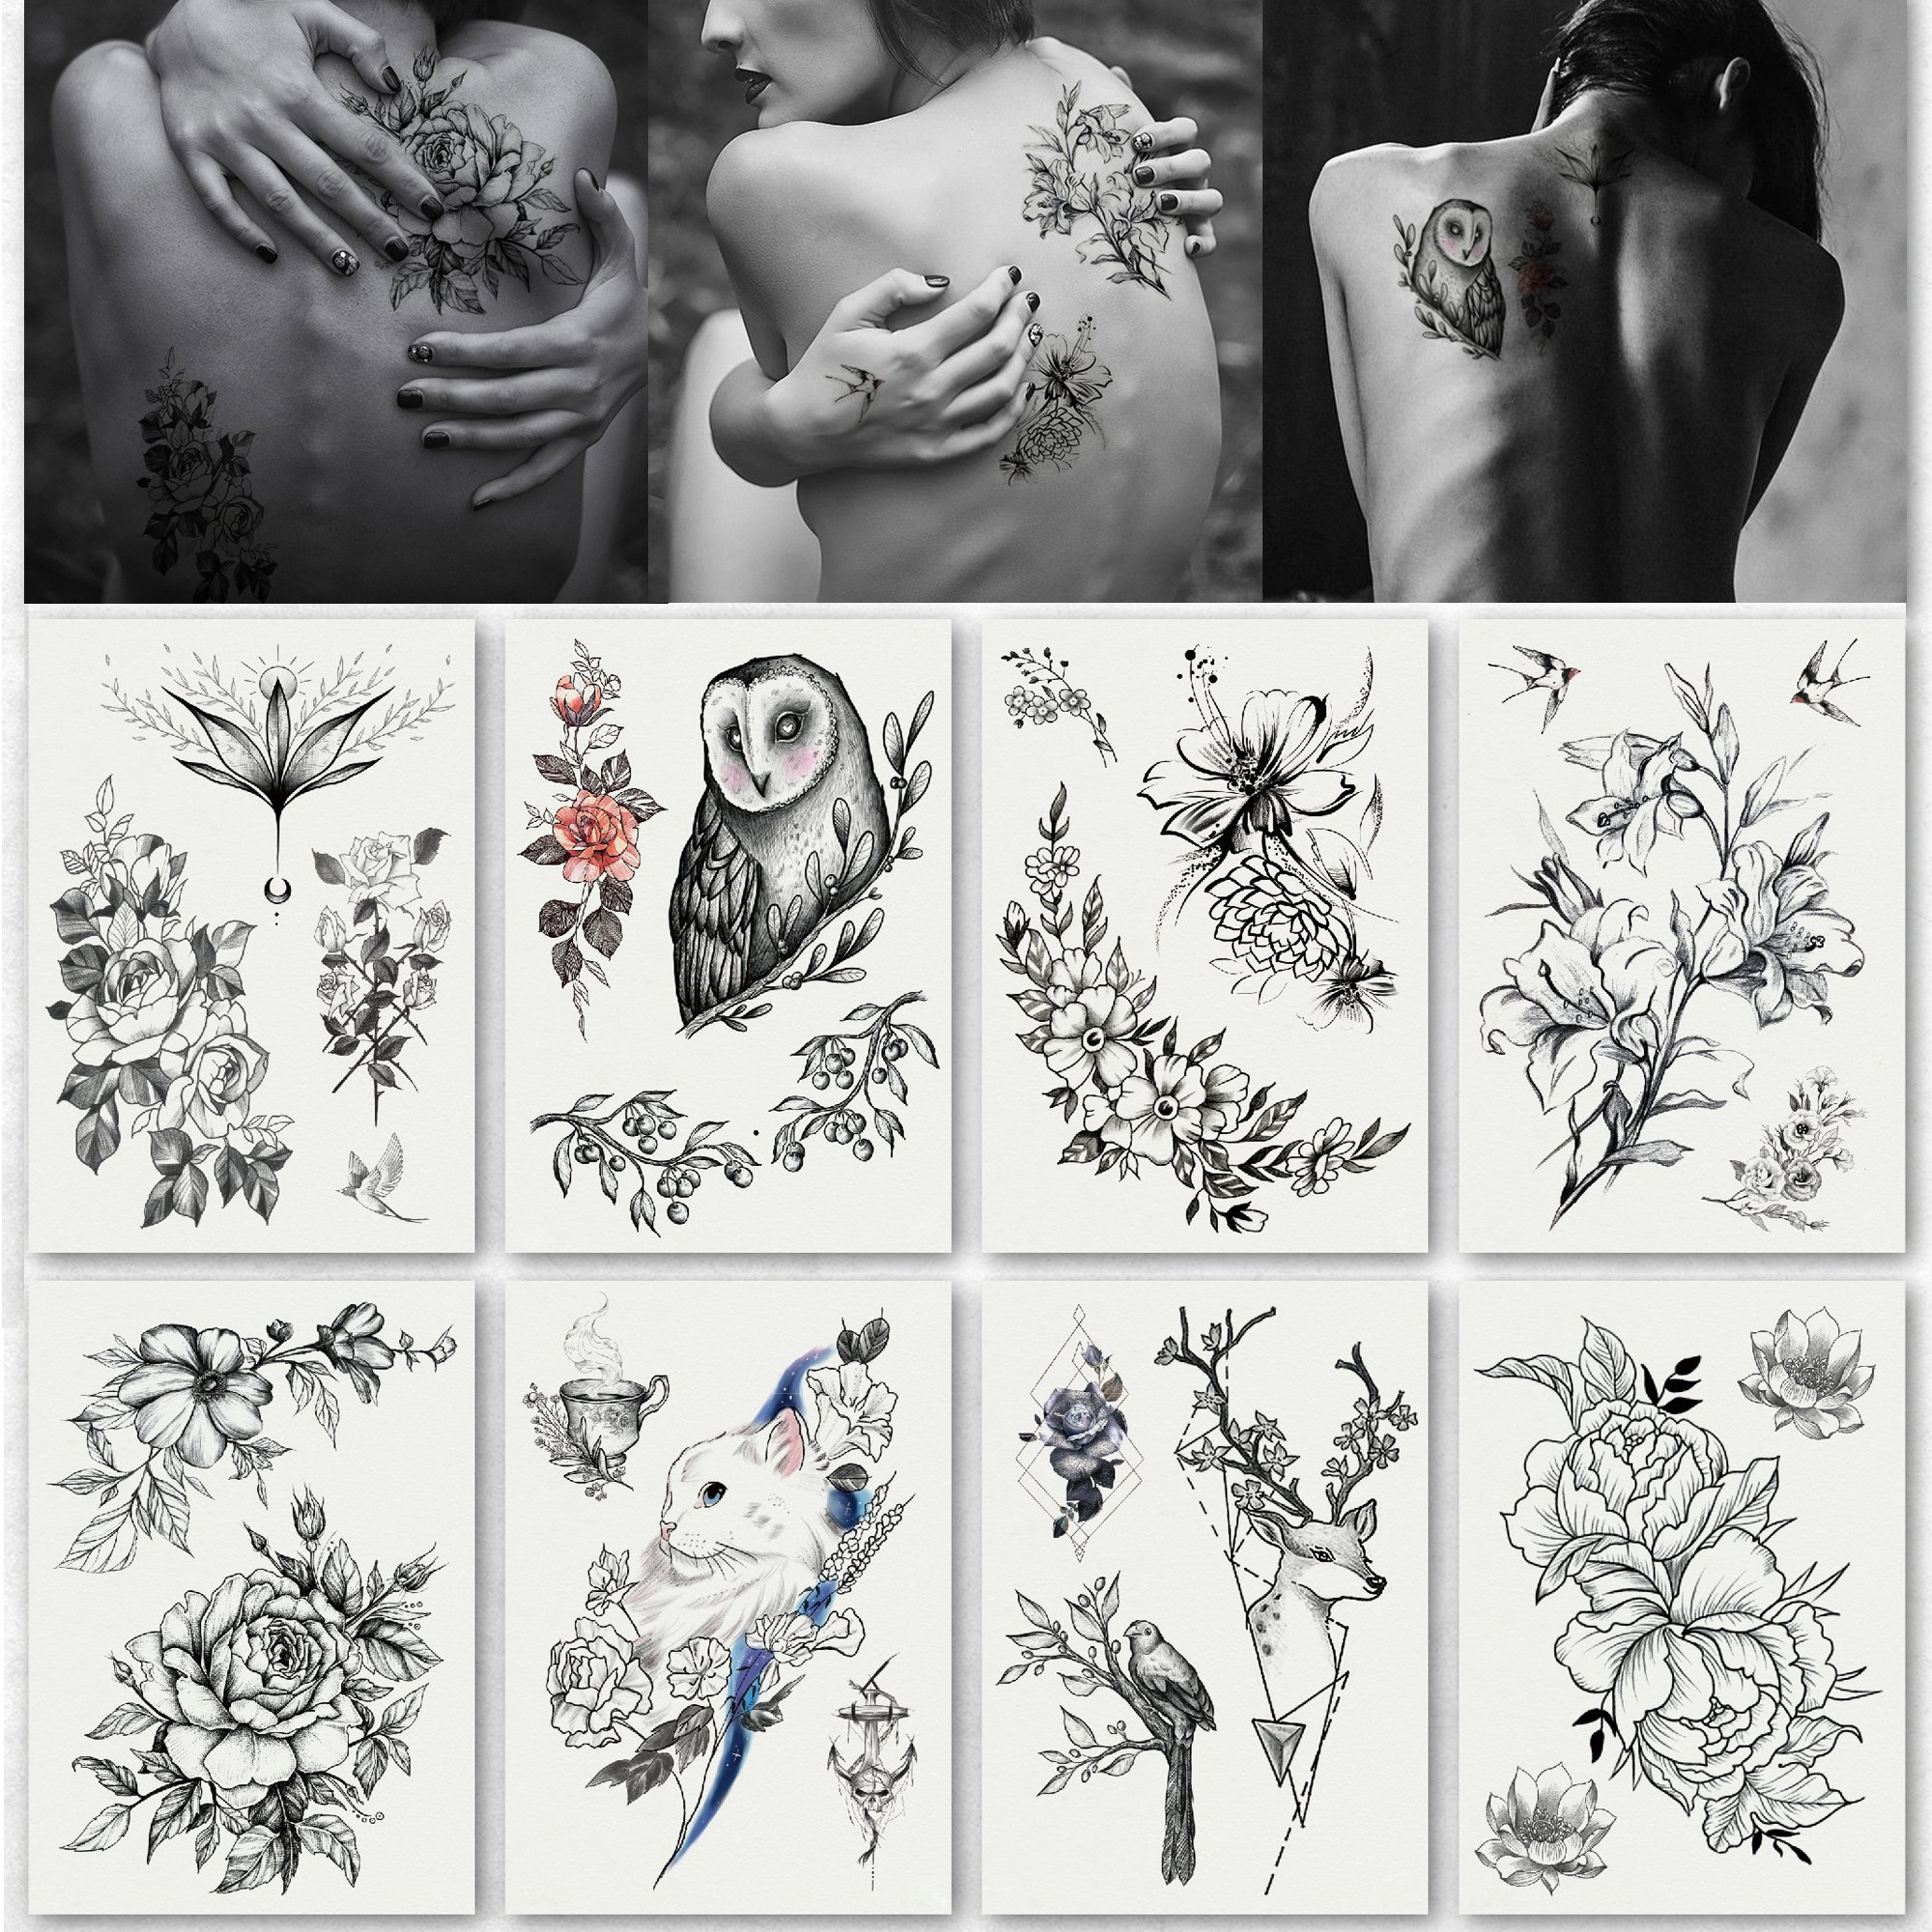 Kotbs 8 Sheets Temporary Floral Tattoos Sexy Body Tattoo Sticker for Girl Women Makeup Waterproof Large Temporary Tattoos Flower Paper Fake Tattoo